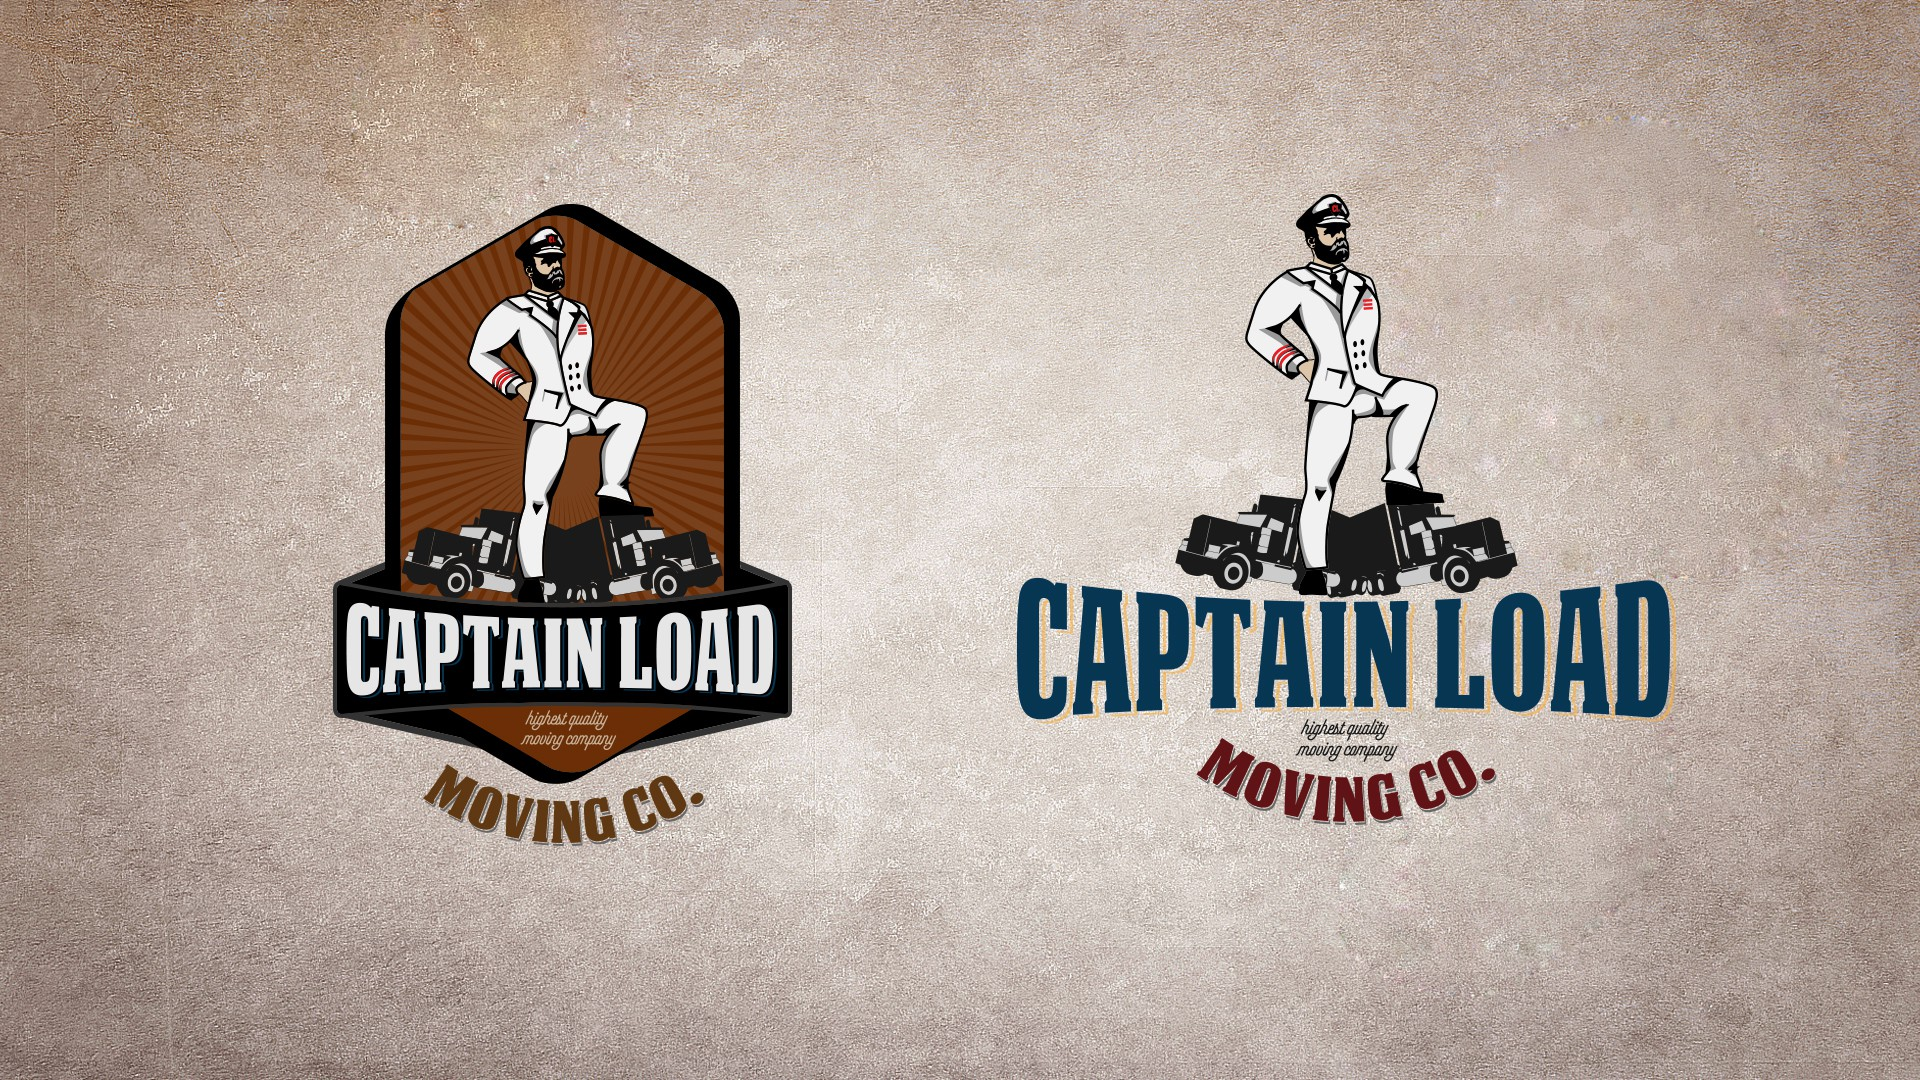 Create logo for moving company with subtleties - be risky - Captain Load Moving Co.